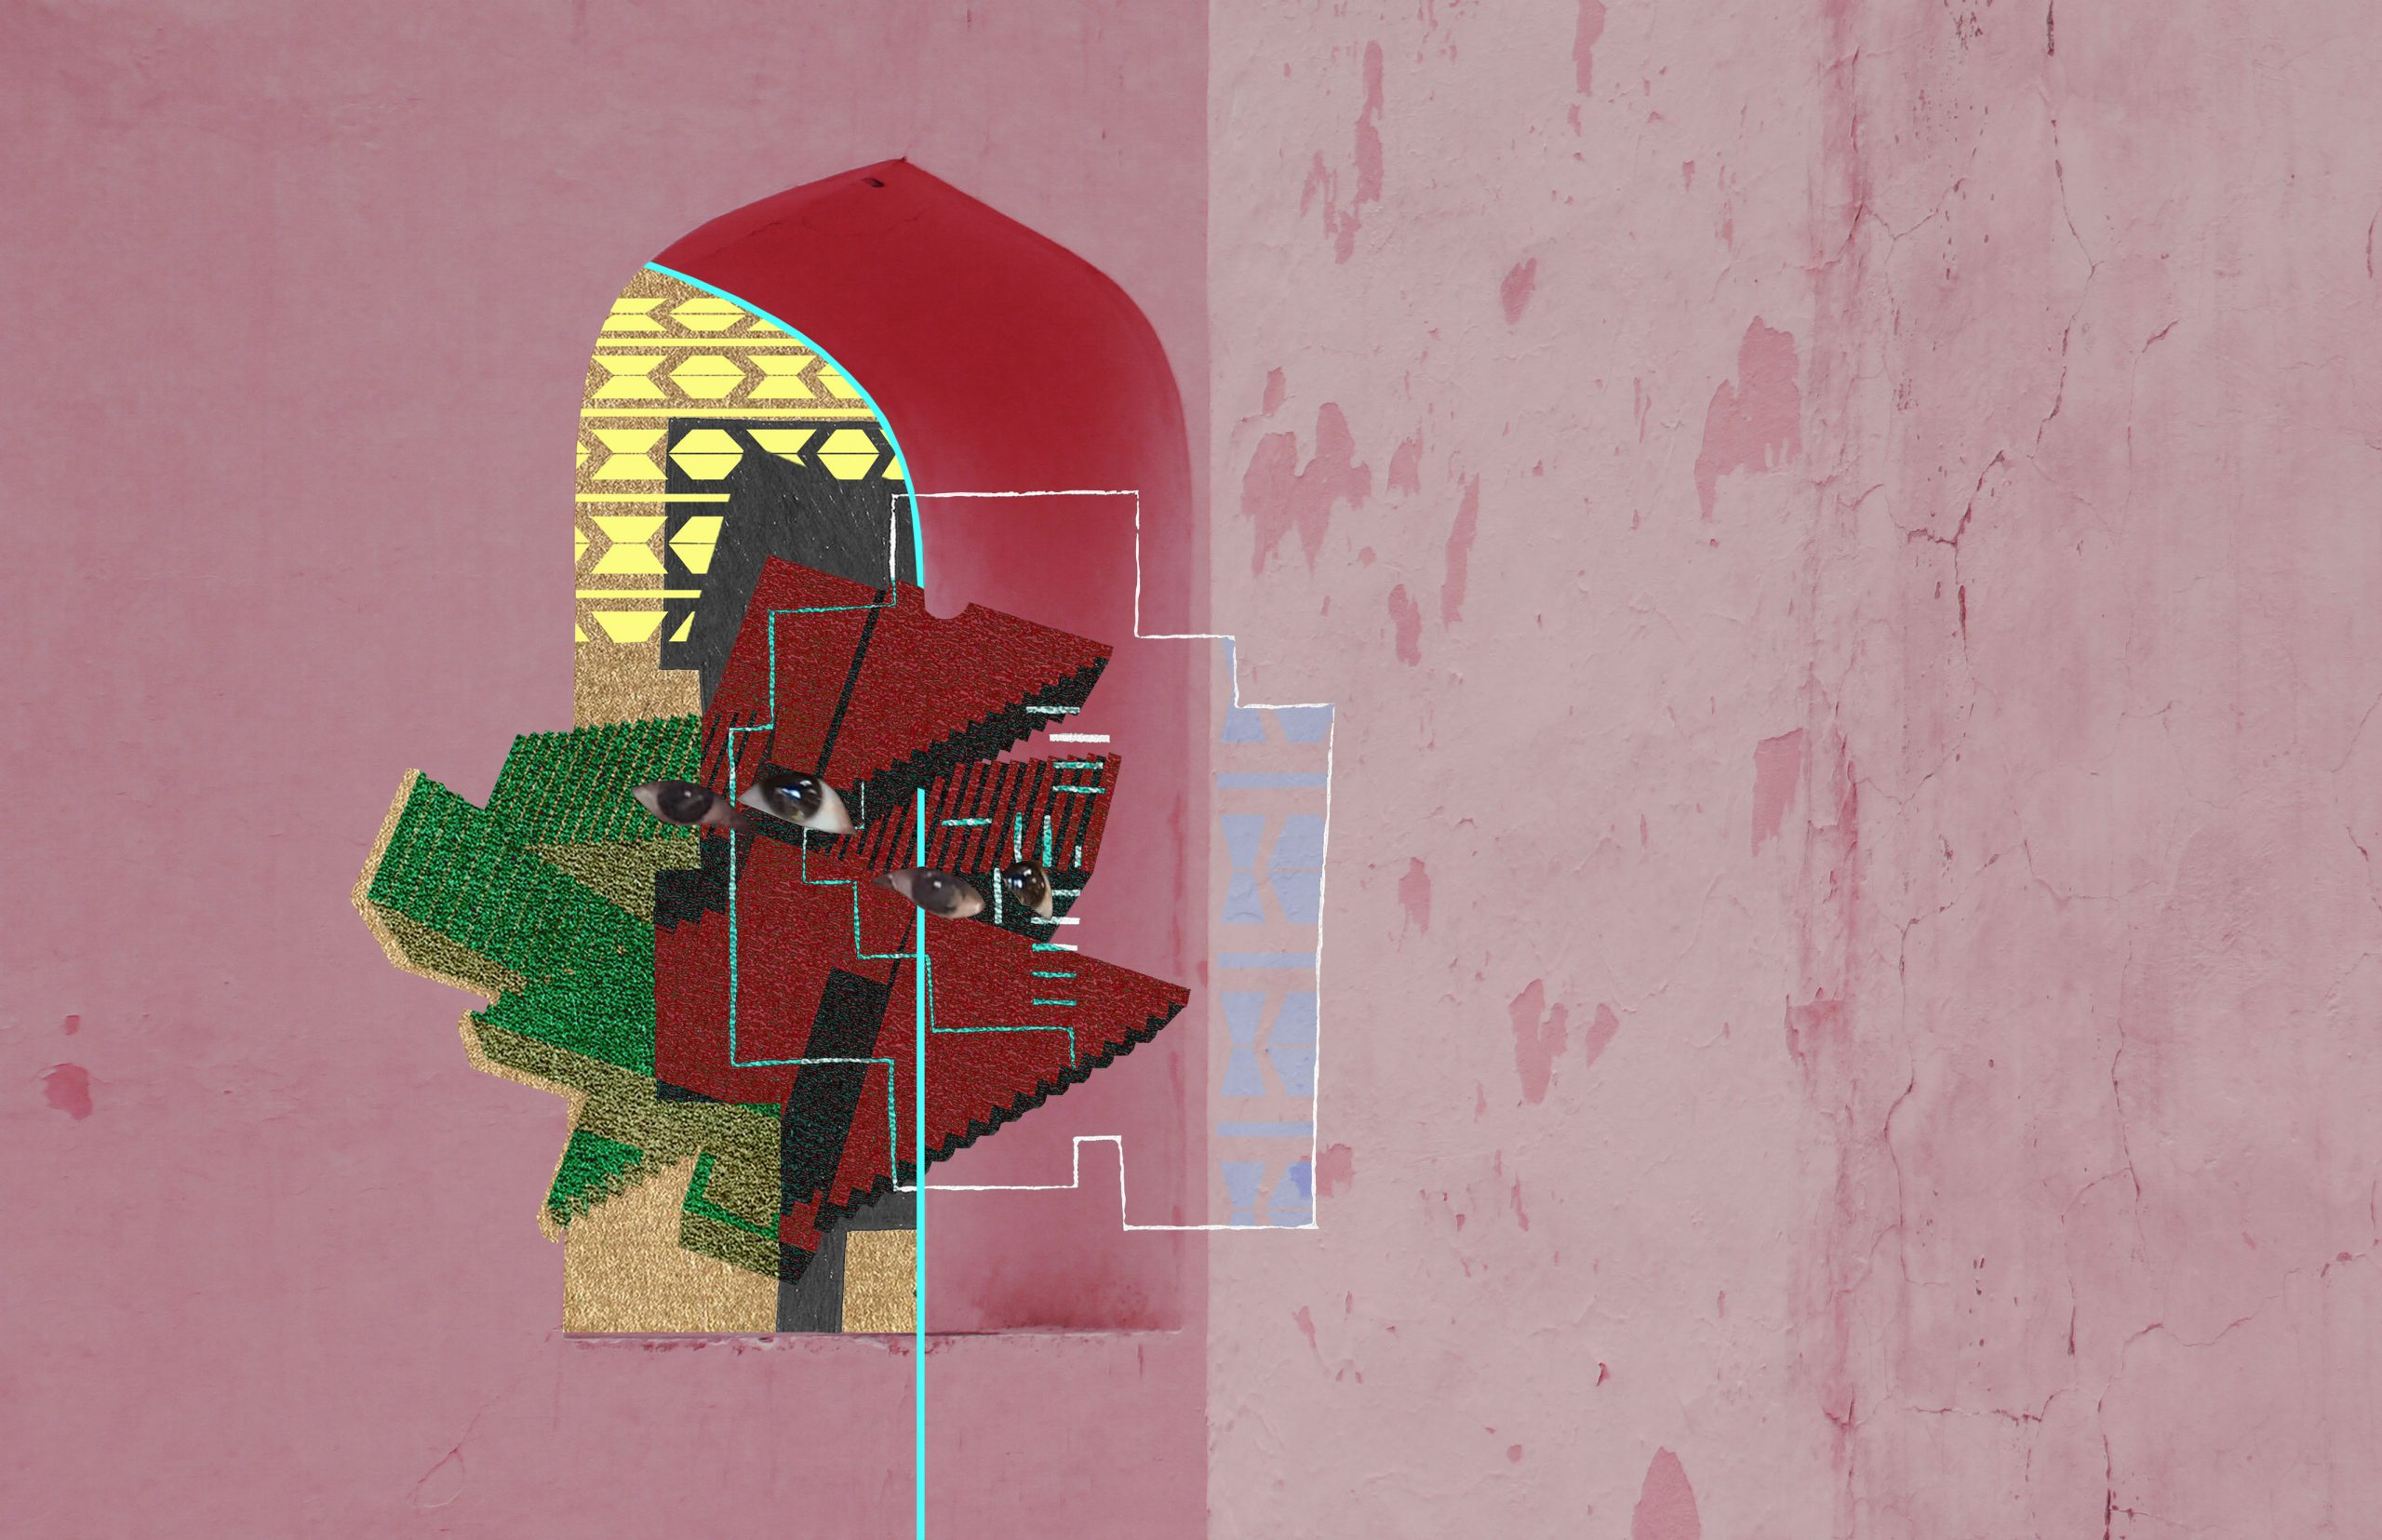 "An abstract, geometric representation of a human face in red, green and gold, consisting of collaged elements and textures in shades of pink. Artists description: ""The idea behind it is to ask the viewer to deconstruct, enquire, and reconstruct what is being offered, especially since 'Utopia' as a topic can be a very subjective concept."""